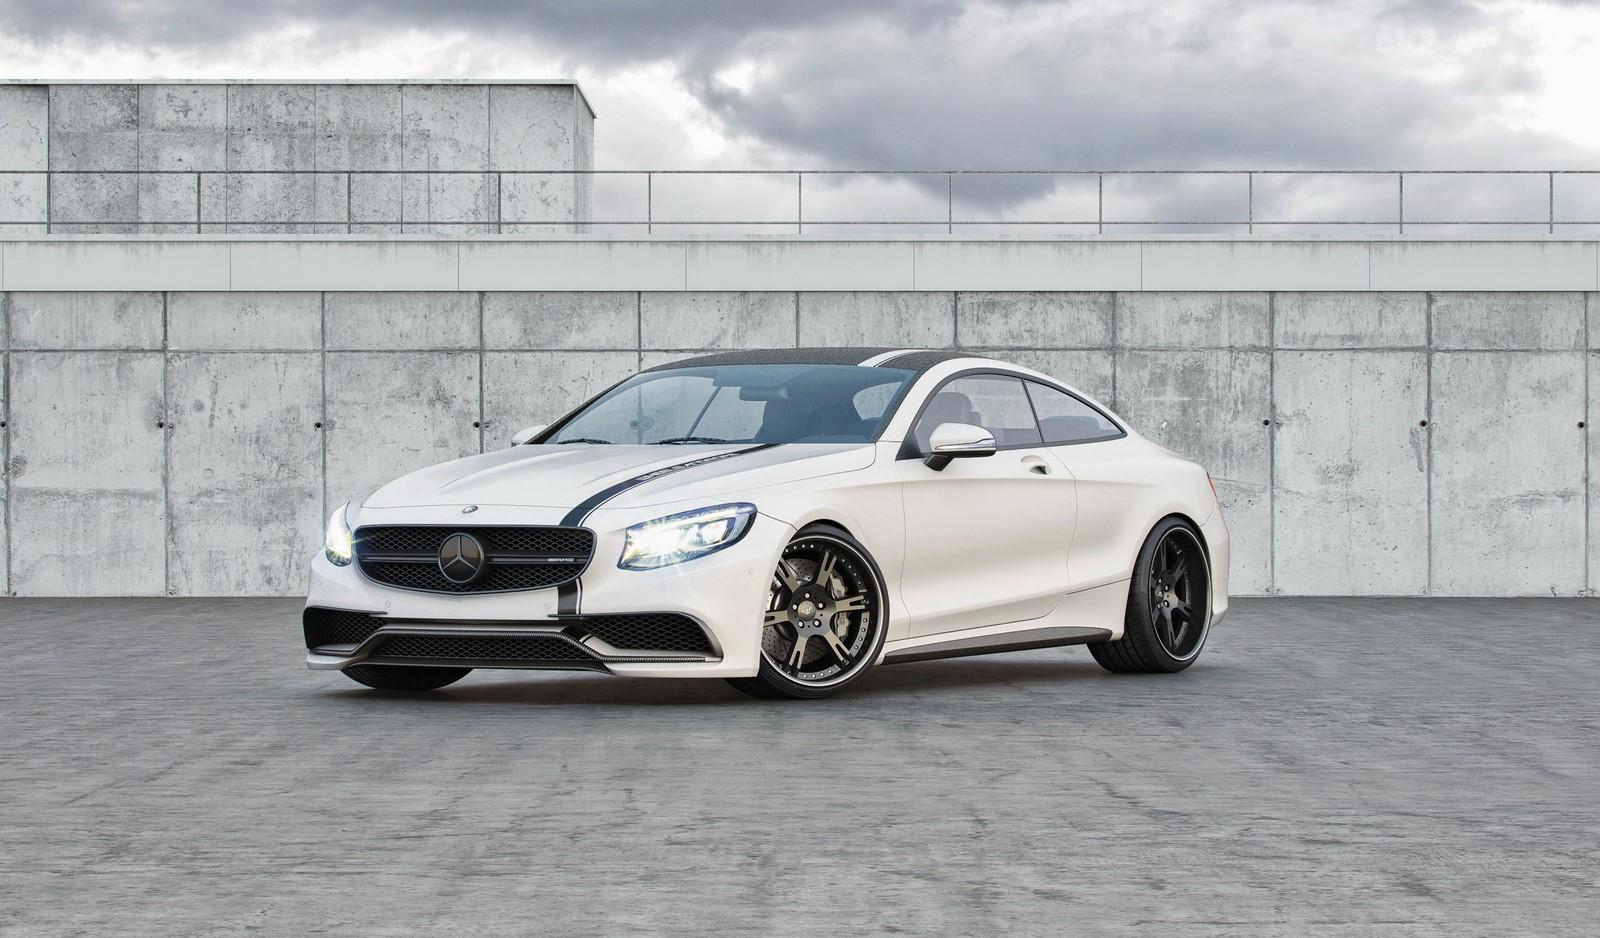 Mercedes-Benz S63 AMG Coupe Wheelsandmore